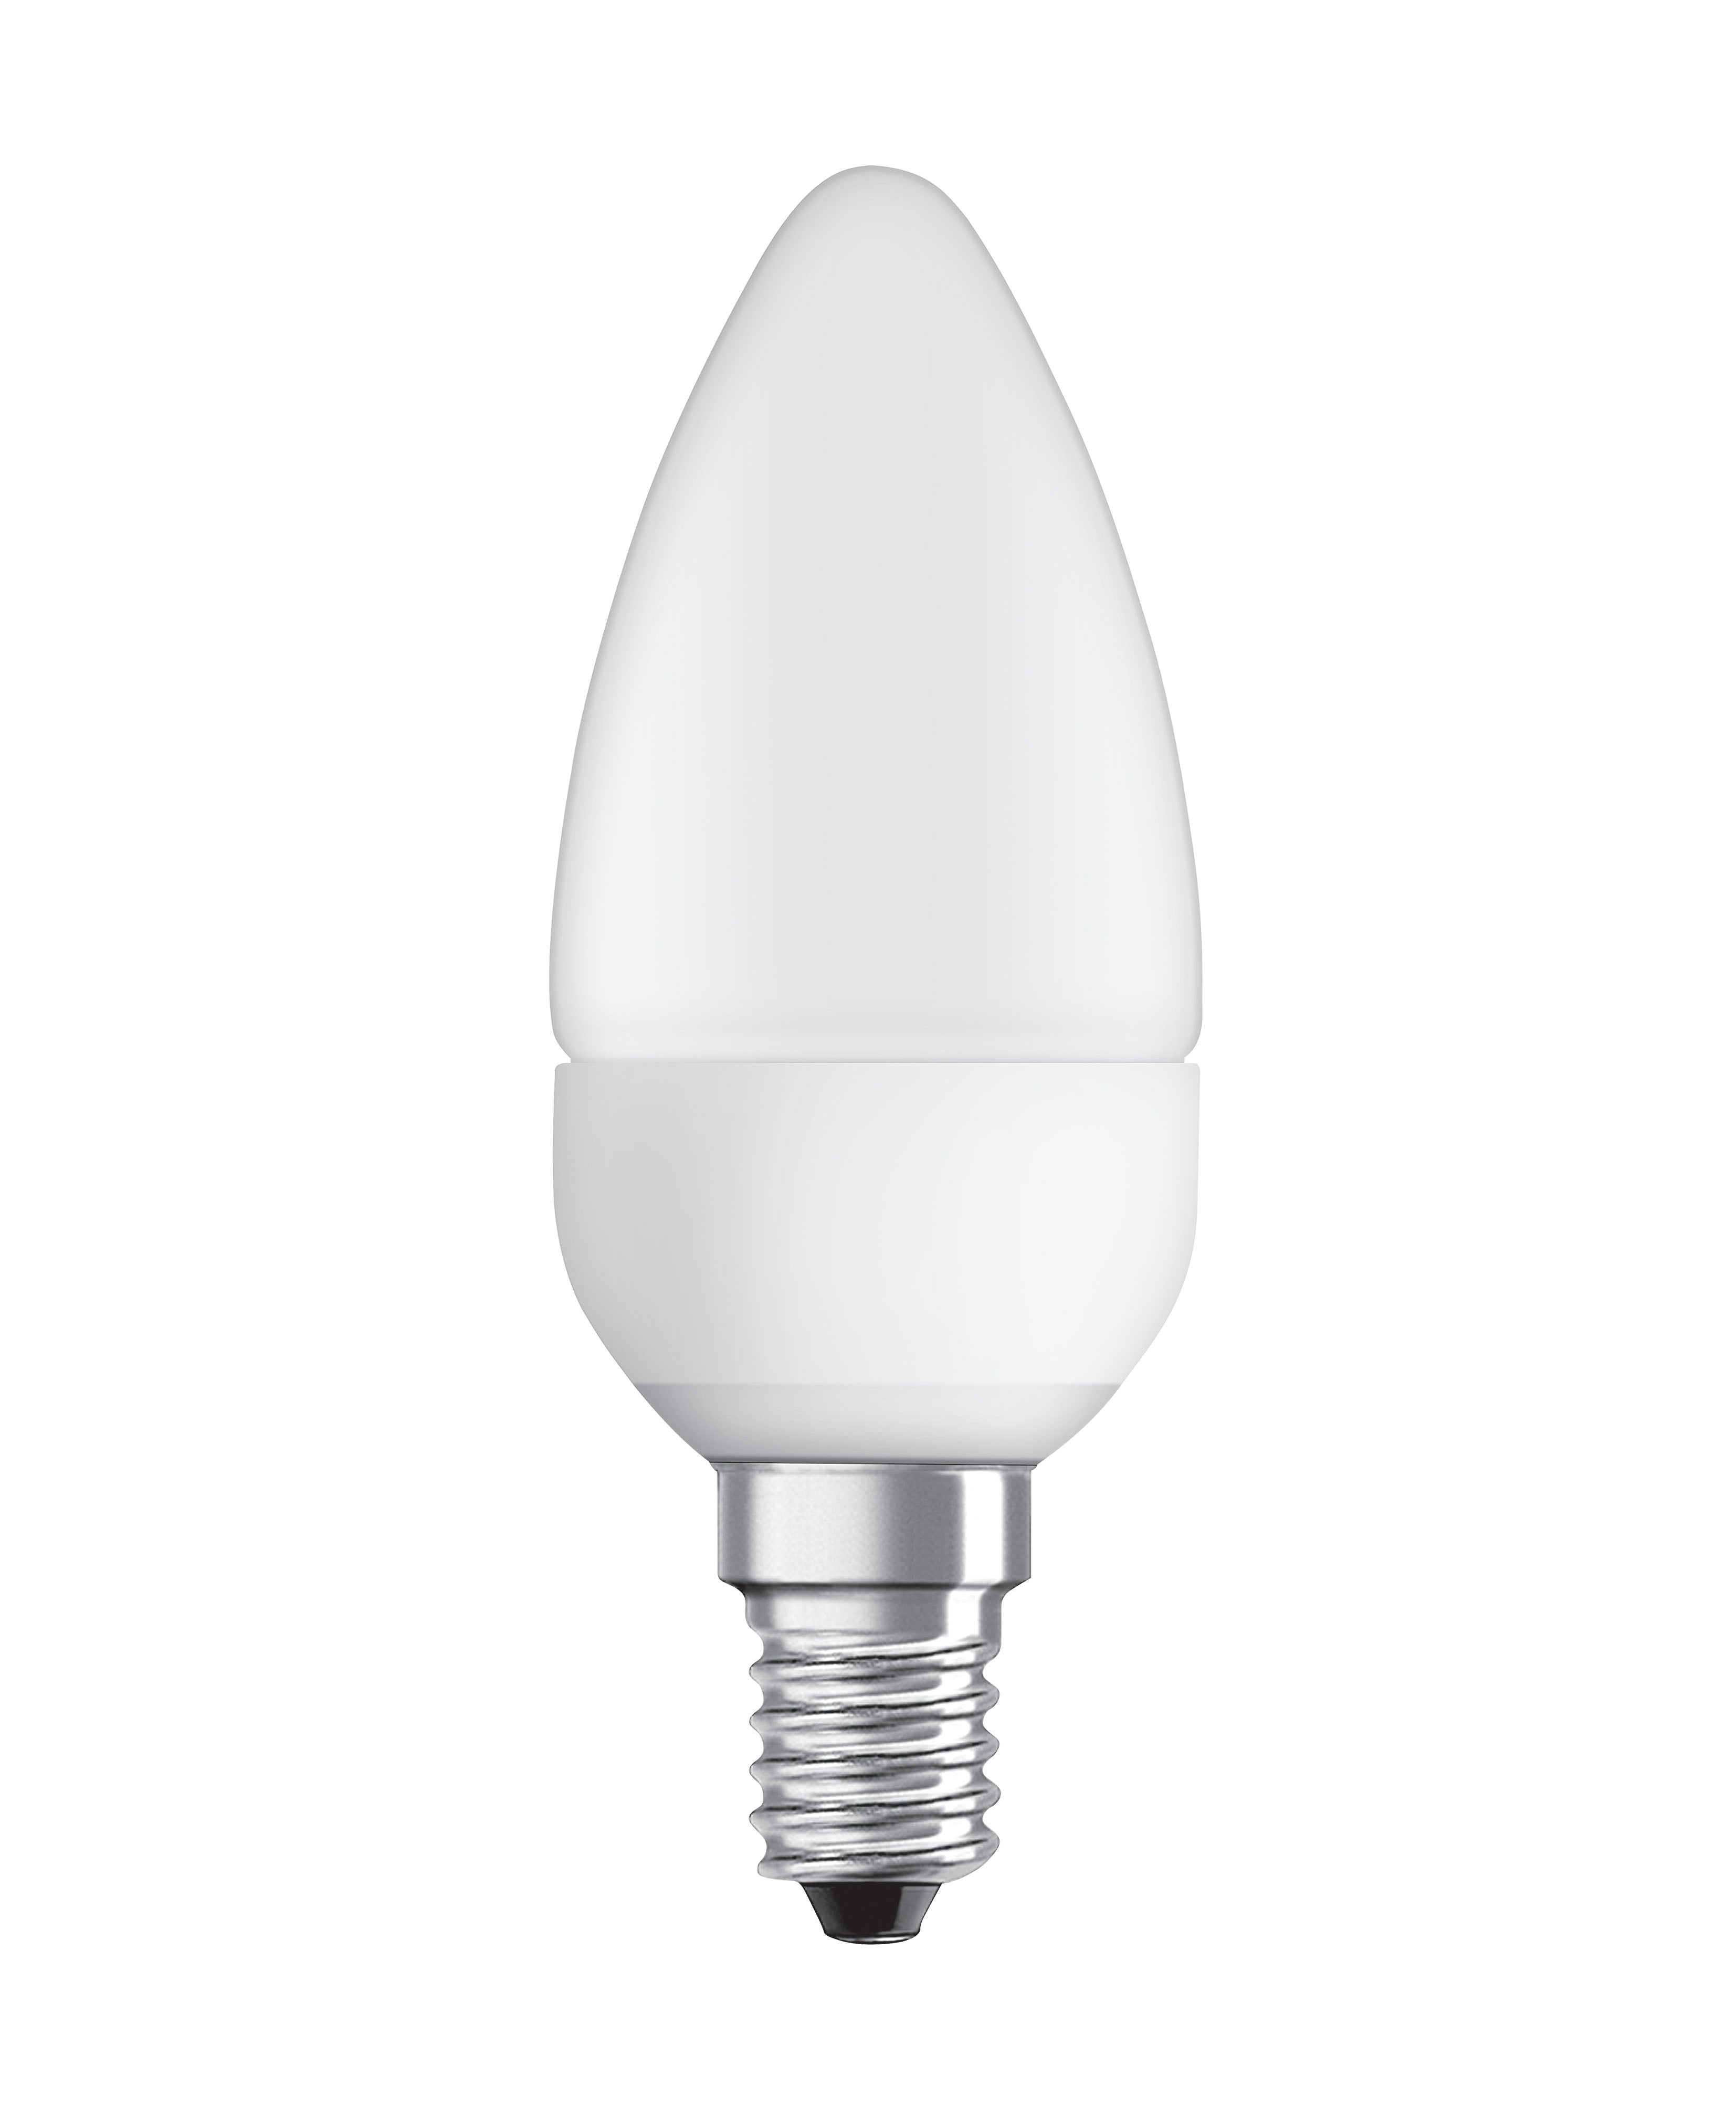 Osram 3.6 Watt LED Candle Bulb